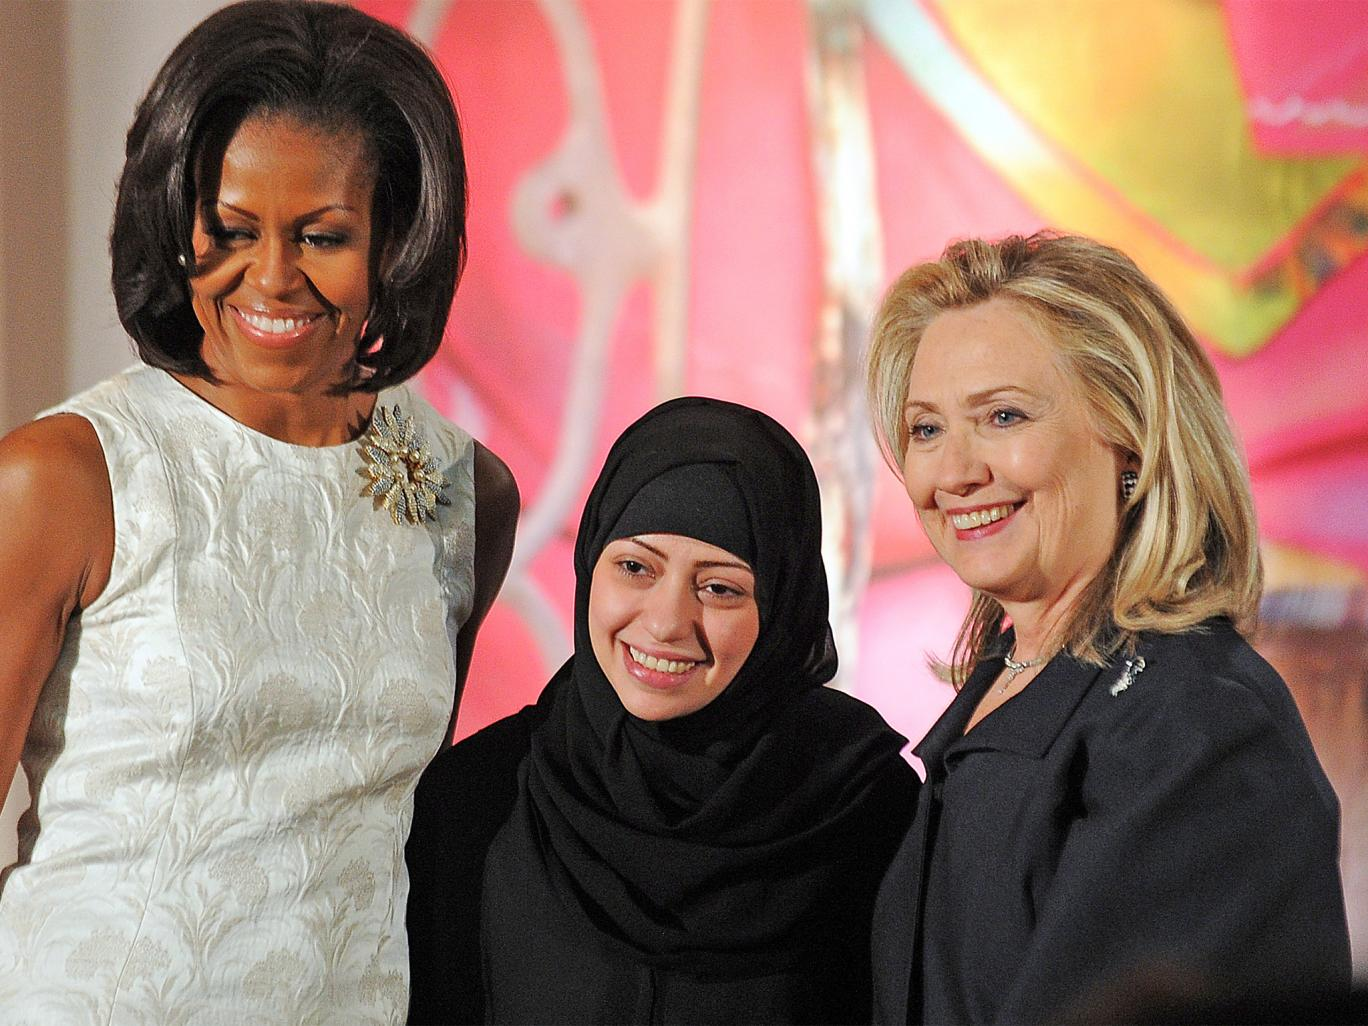 Samar Badawi: Saudi Arabia releases human rights activist from prison where her brother and husband are held